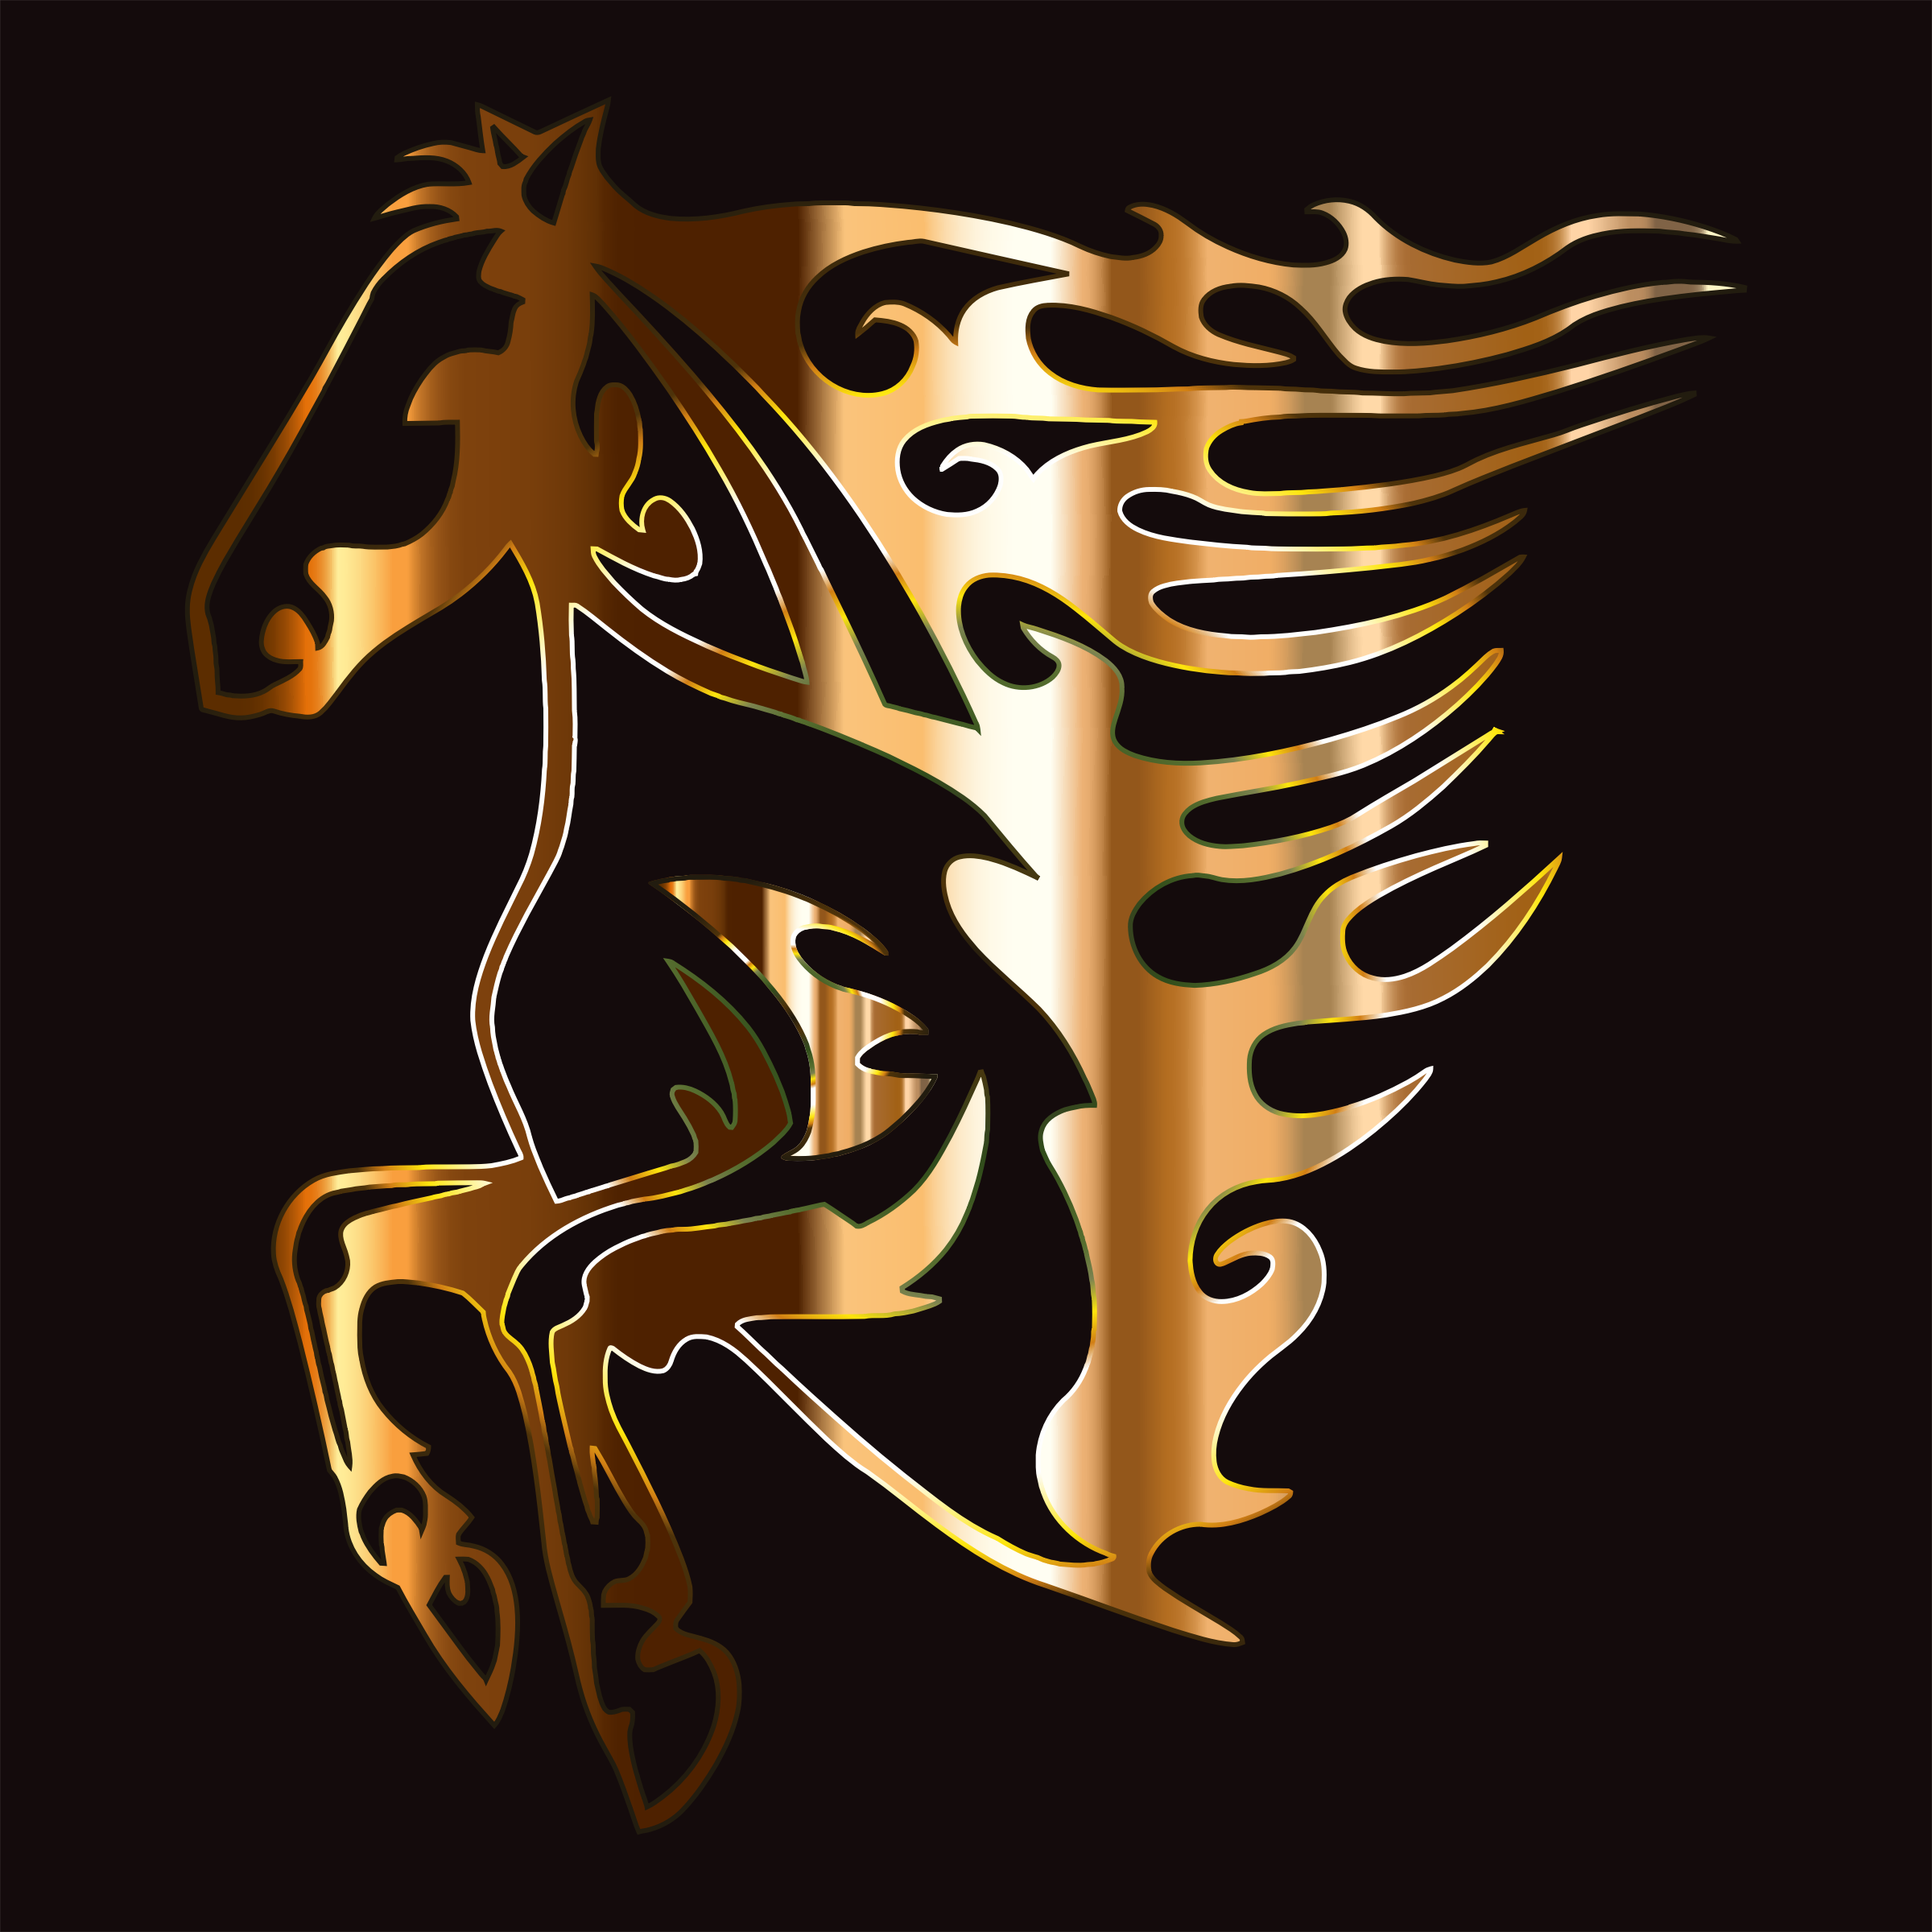 Golden Flame Horse by GDJ